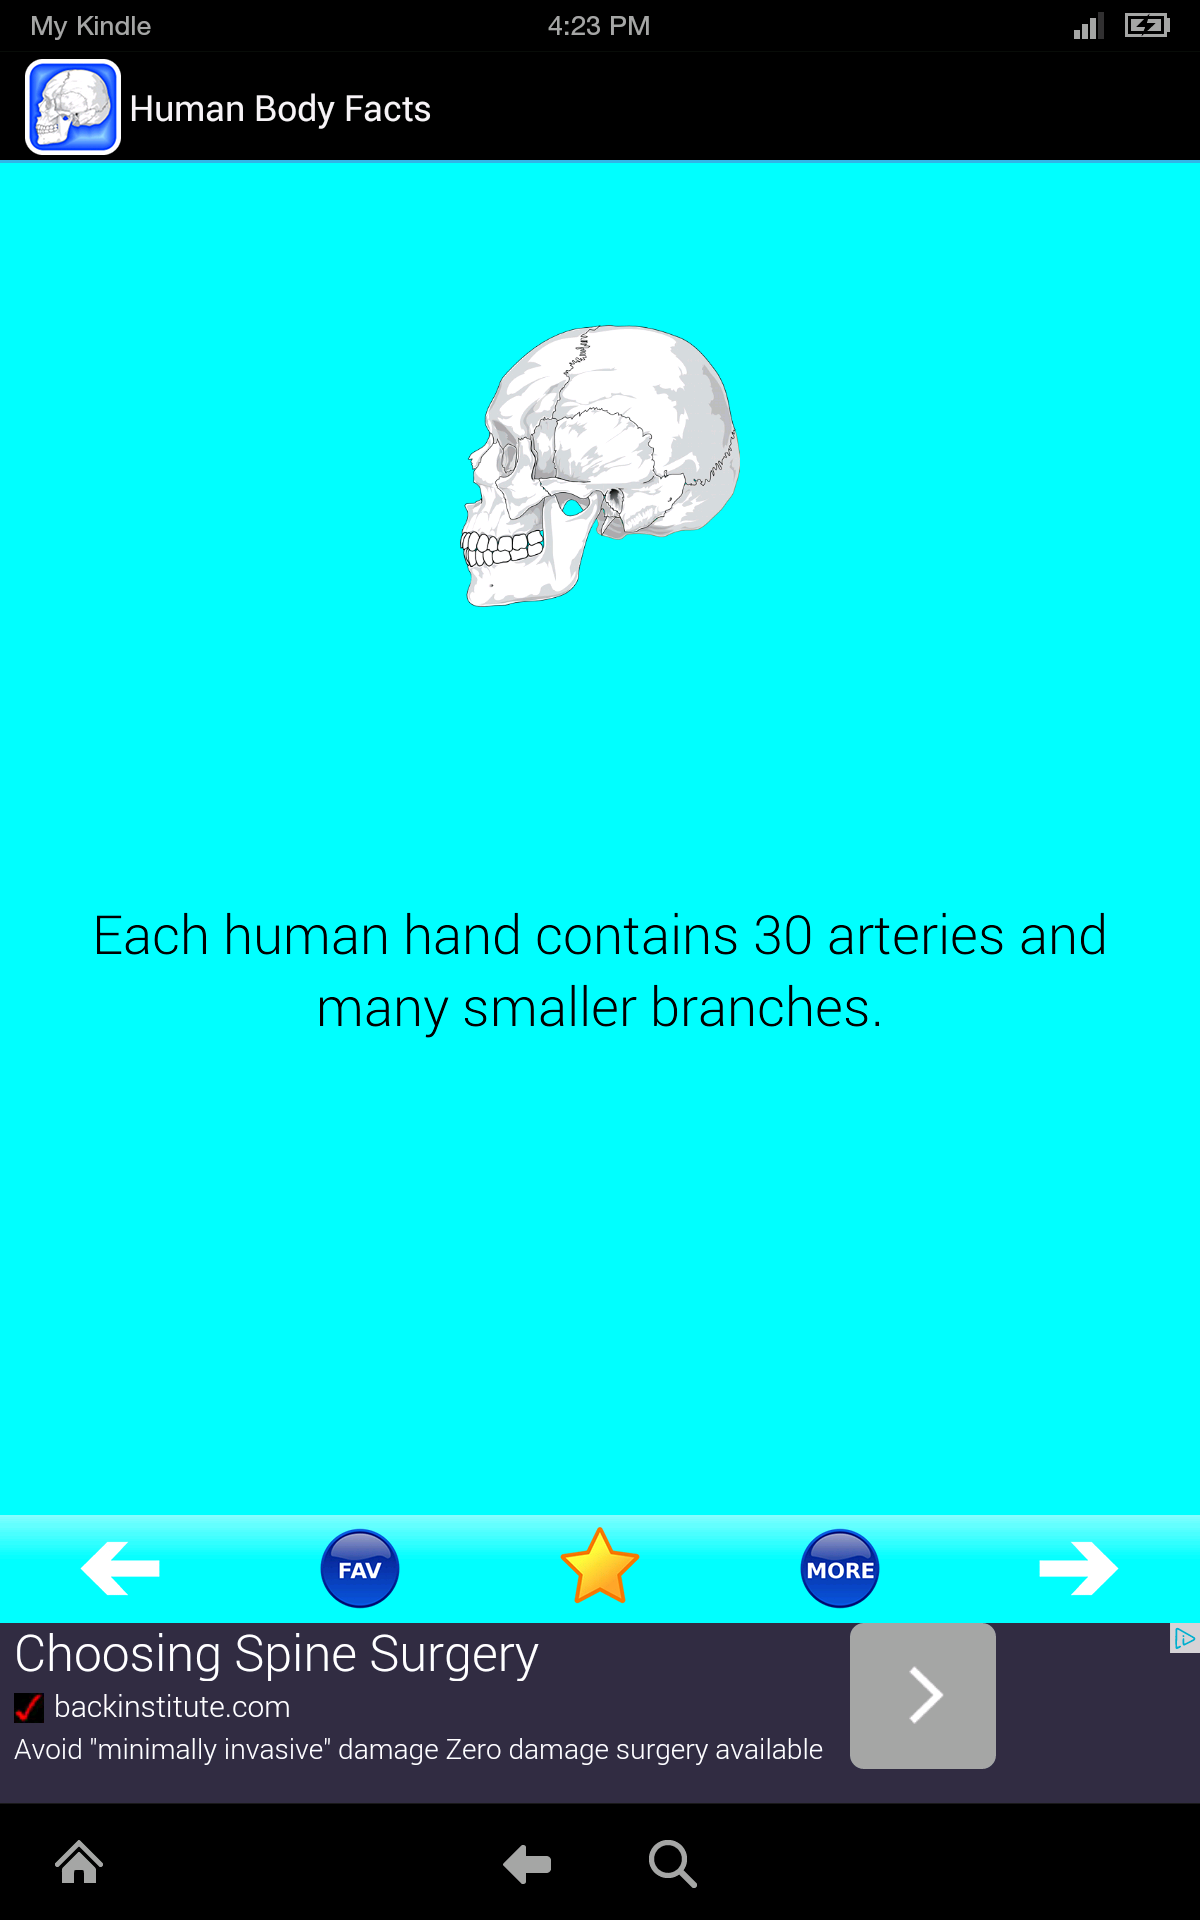 Human Body Facts: Fun Human Anatomy and Physiology Flash Cards app FREE!  Learn about Bones, Muscles, Brain, and the Body Parts Atlas of Science